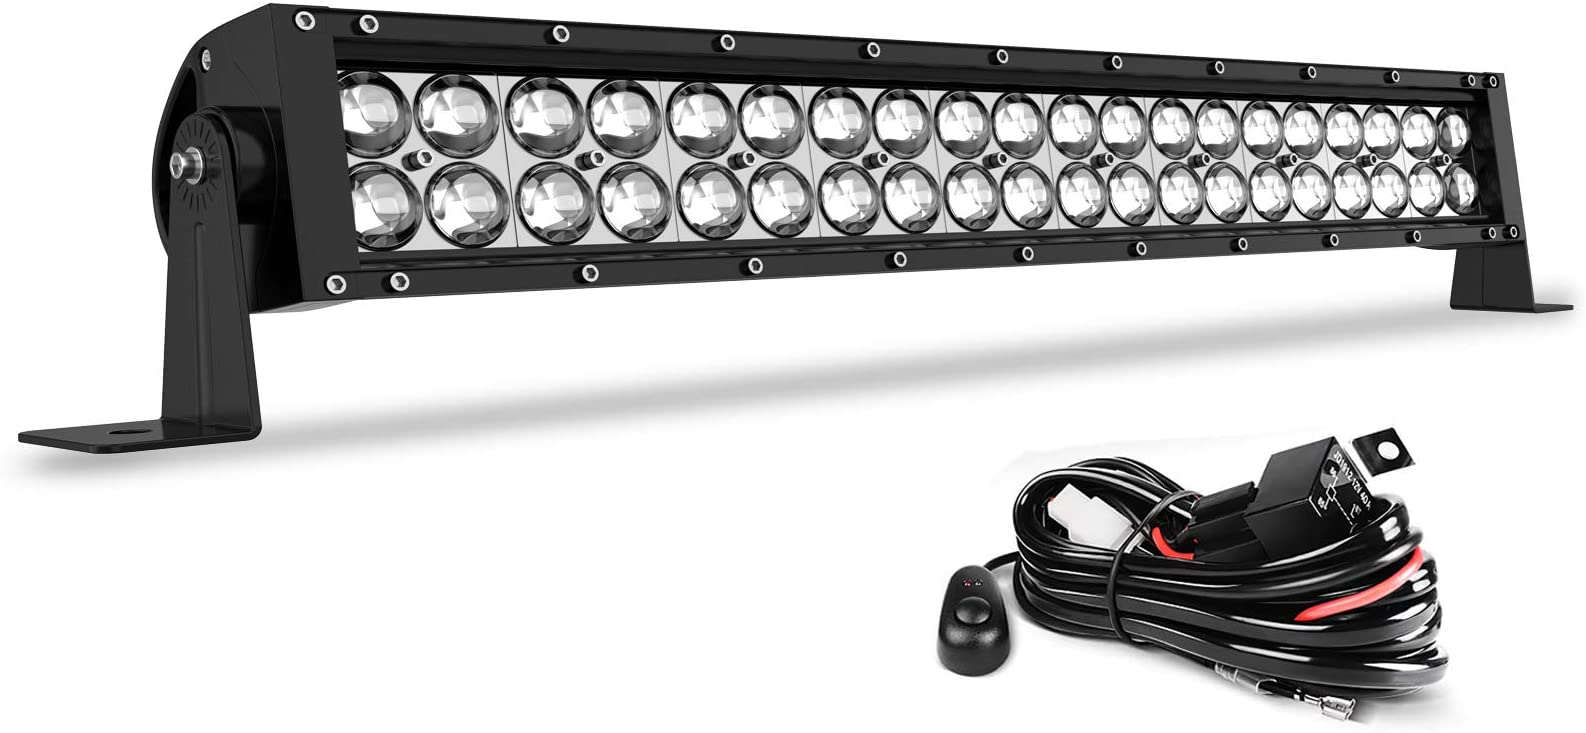 LED Light Bar 24 Inch Straight AUTO Work Light 4D 200W with 8ft Wiring Harness, 20000LM Offroad Driving Fog Lamp Marine Boating Light IP68 WATERPROOF Spot & Flood Combo Beam Light Bar